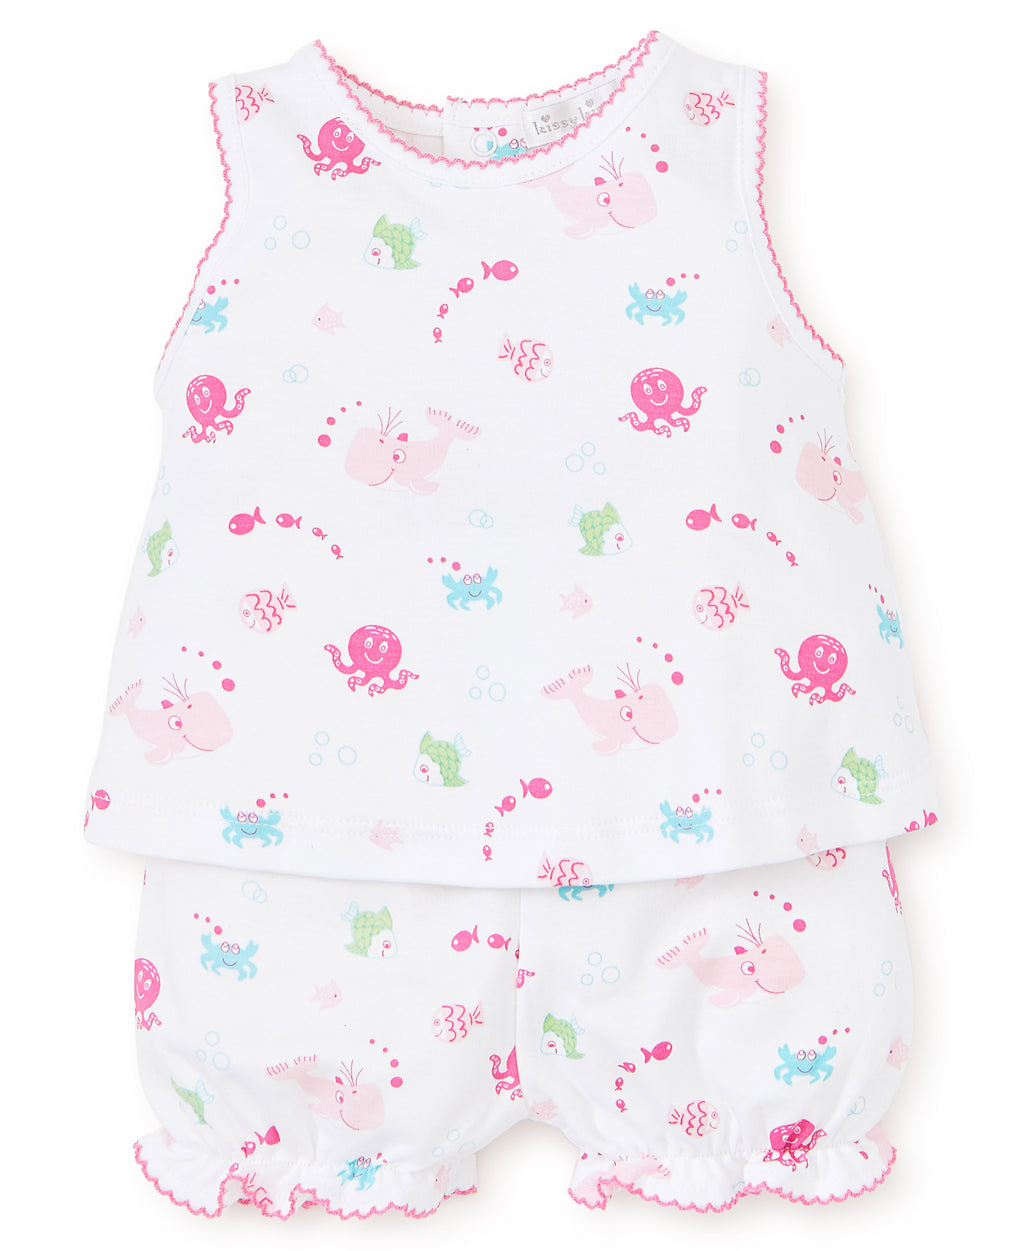 Under The Sea Fuchsia Print Sunsuit Set